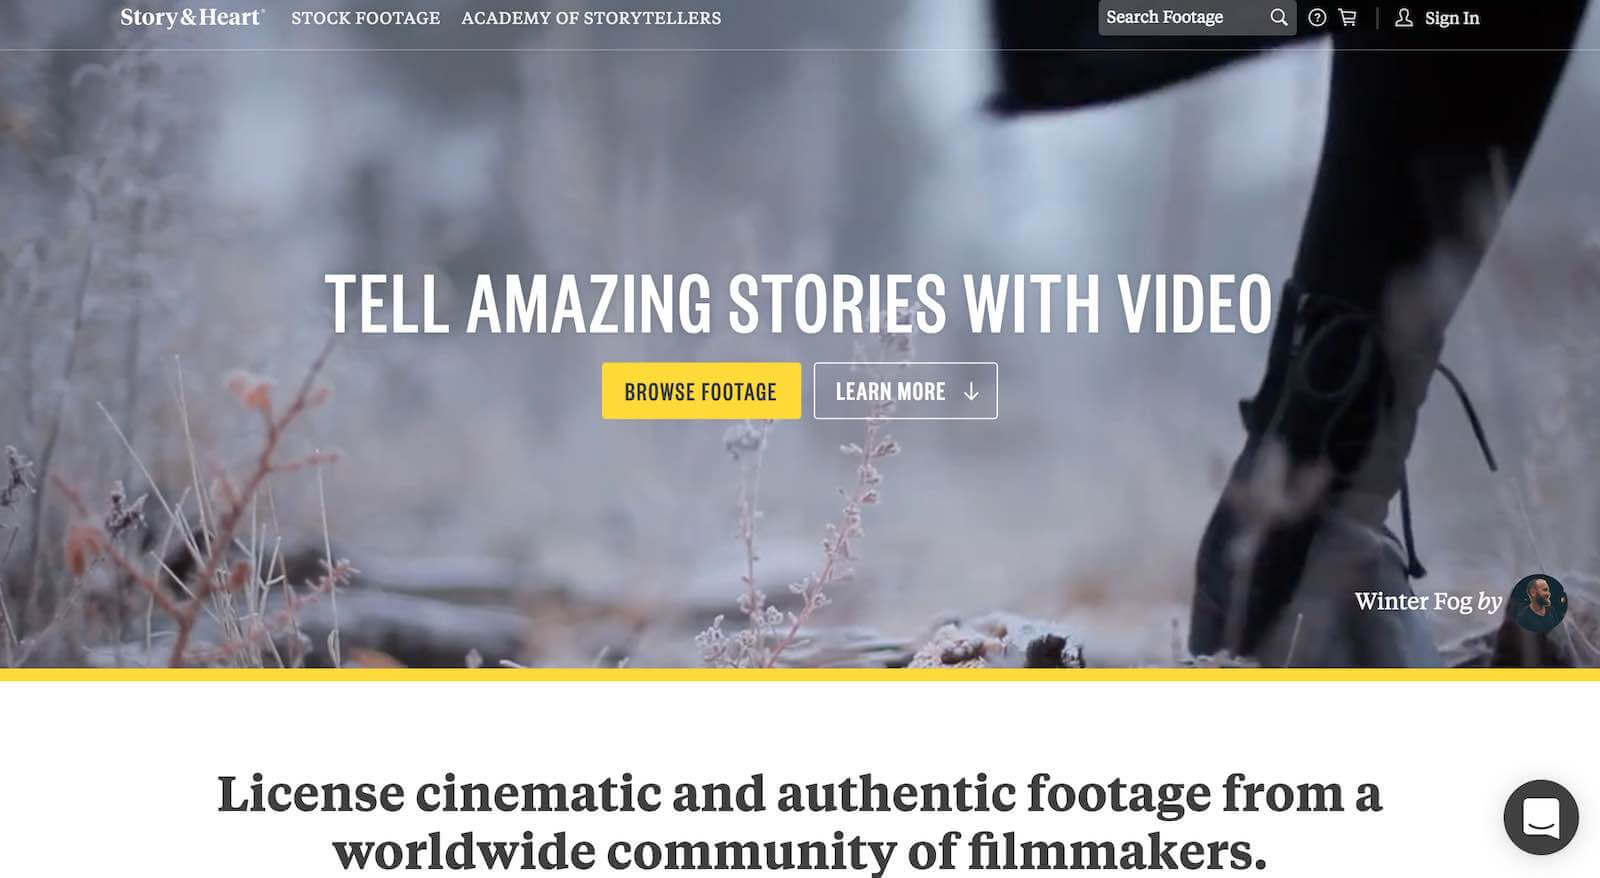 Top 15 Cinematic Stock Video Sites for Filmmakers - Story and Heart